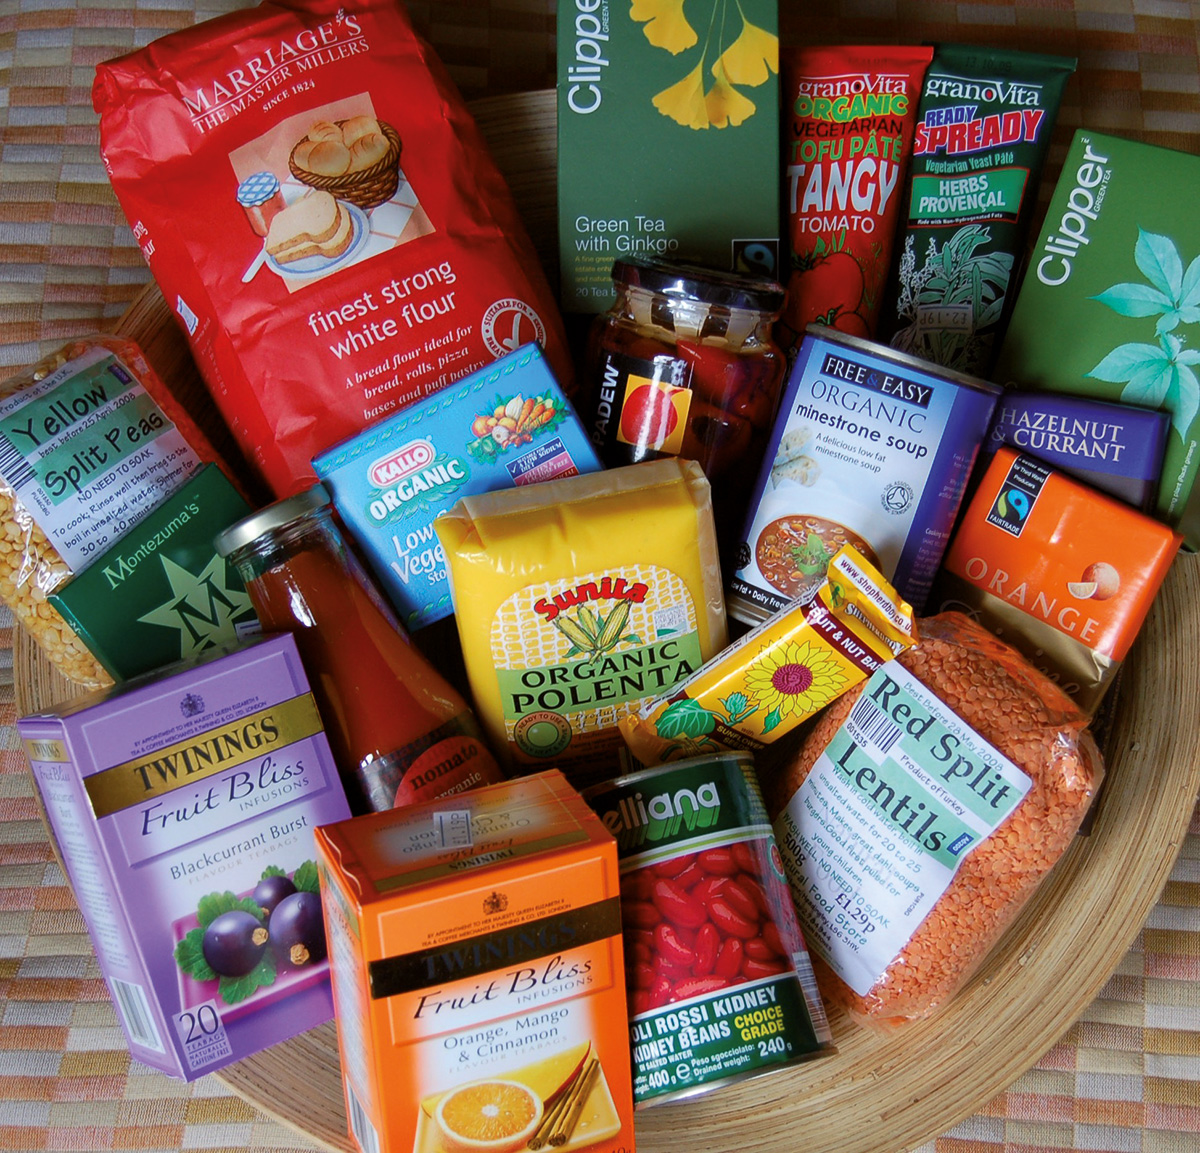 Some of the products on sale in the Natural Food Store